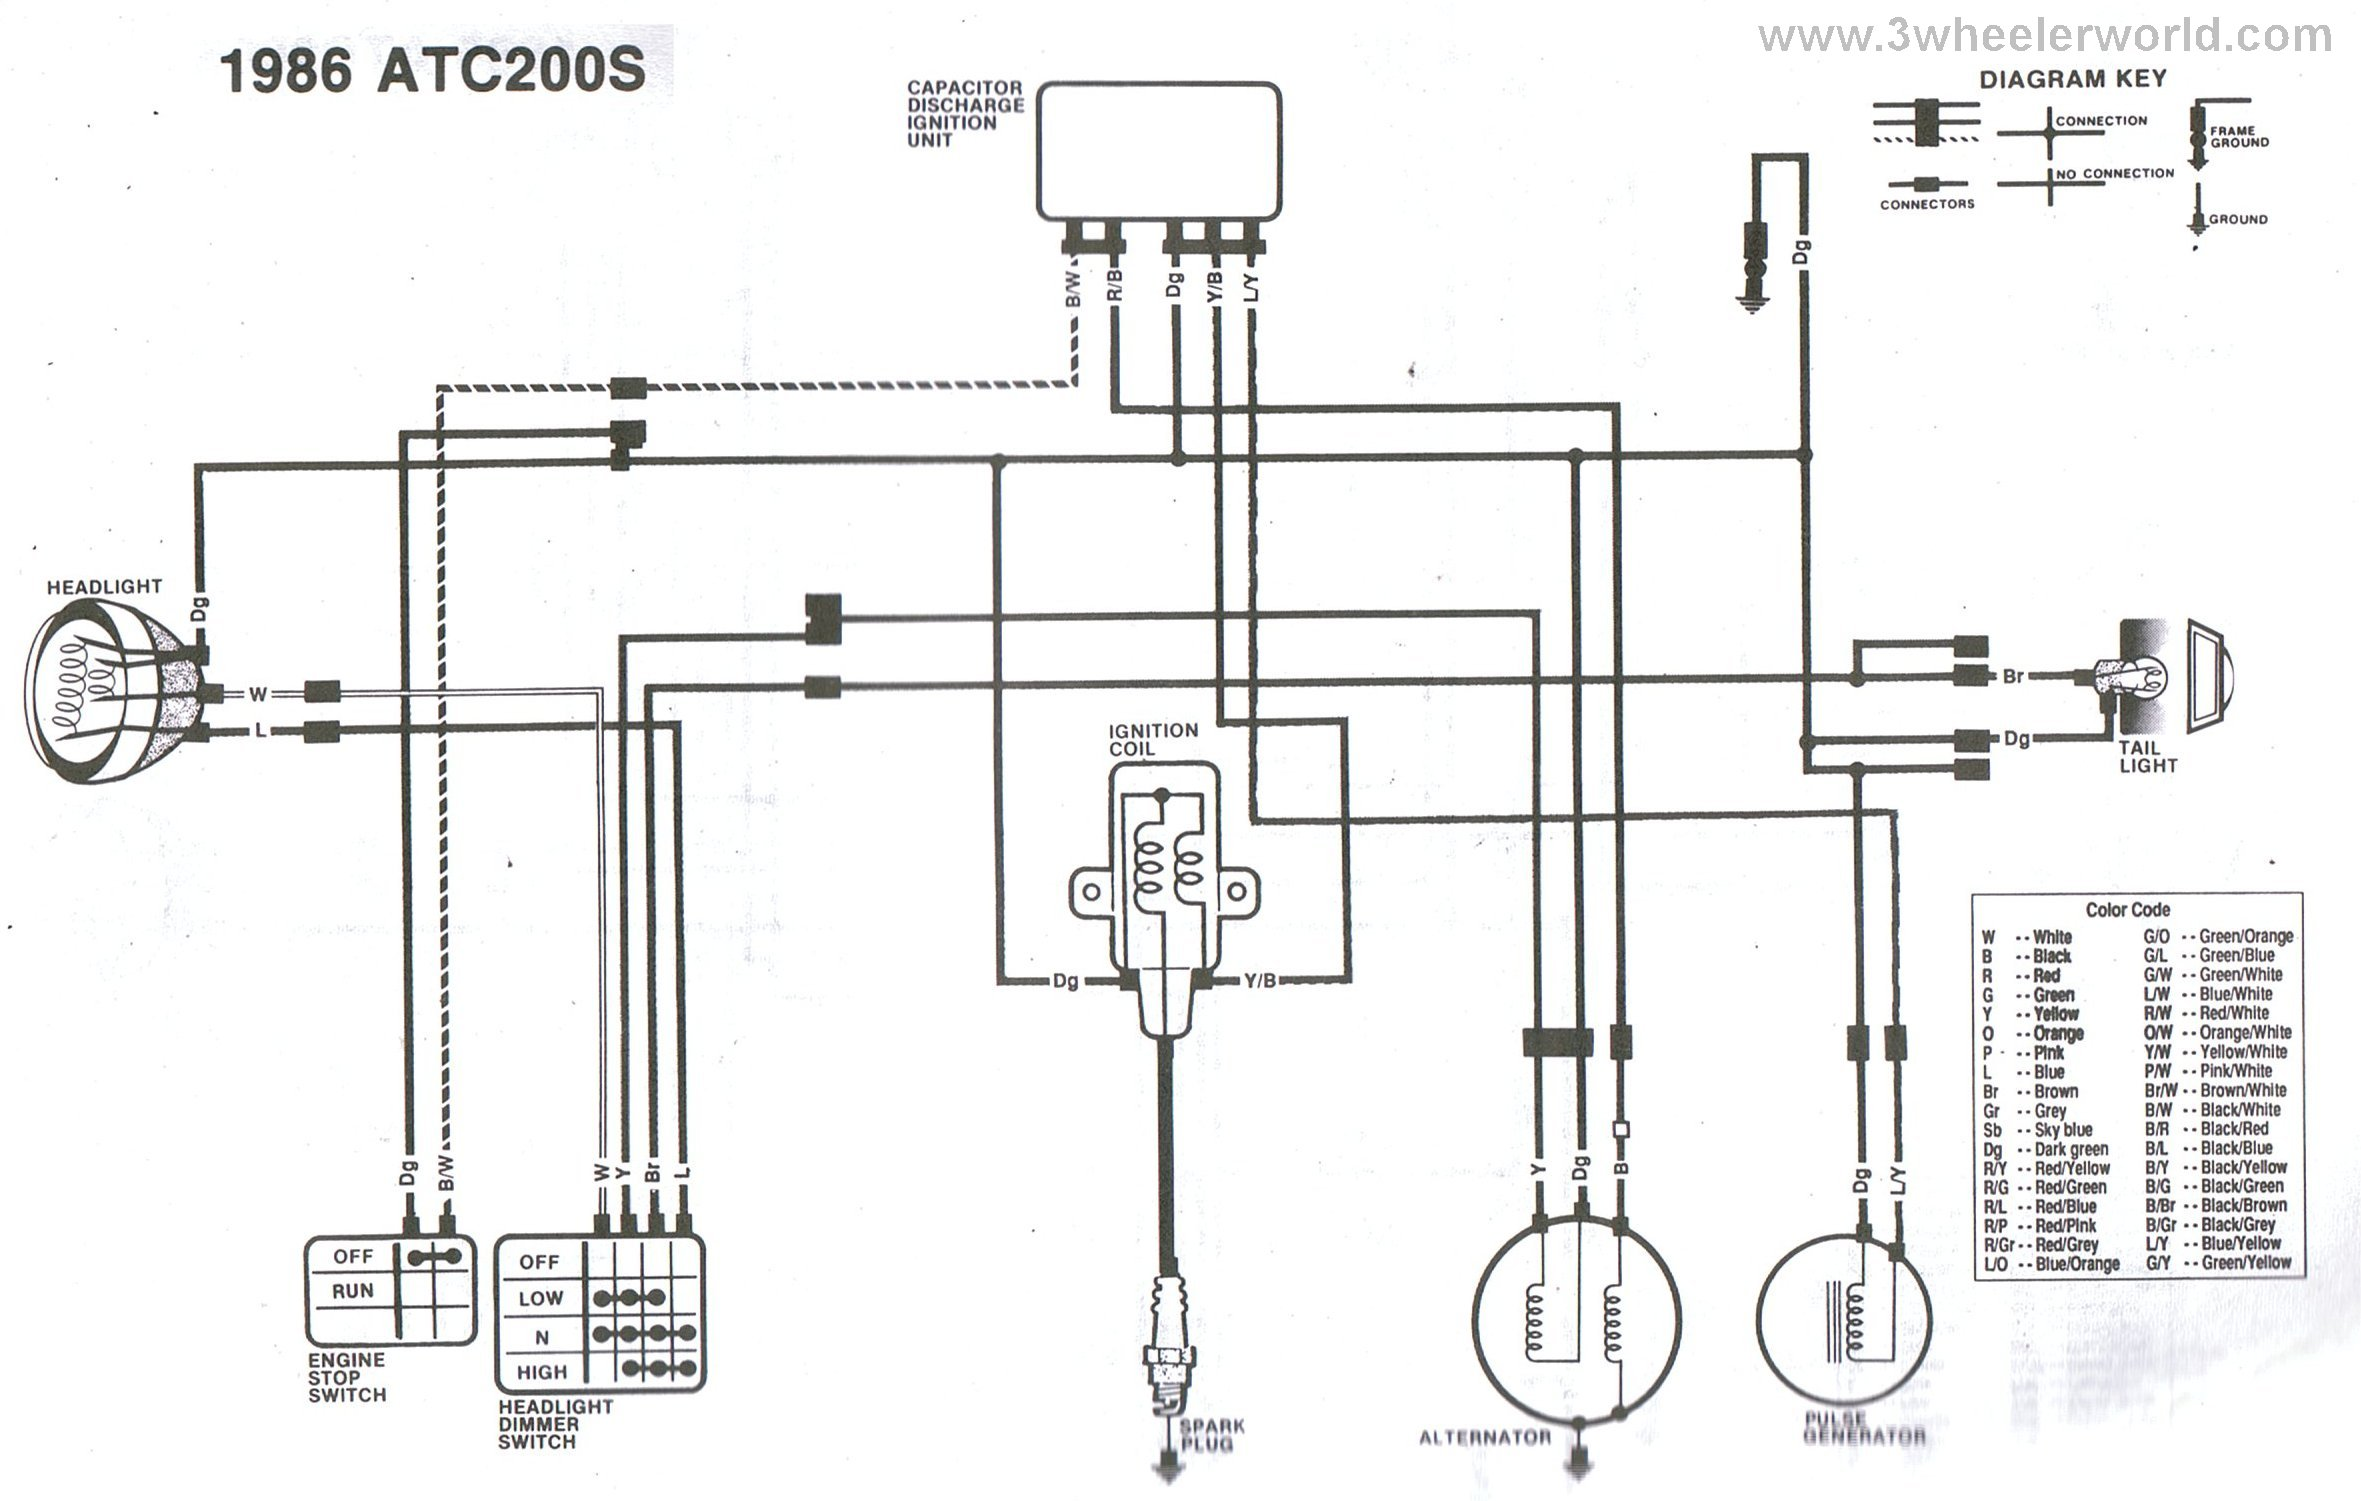 1985 Suzuki Lt250r Wiring Diagram Schematic - Wiring Diagram Can on wire holder, wire nut, wire leads, wire cap, wire connector, wire lamp, wire antenna, wire sleeve, wire clothing, wire ball,